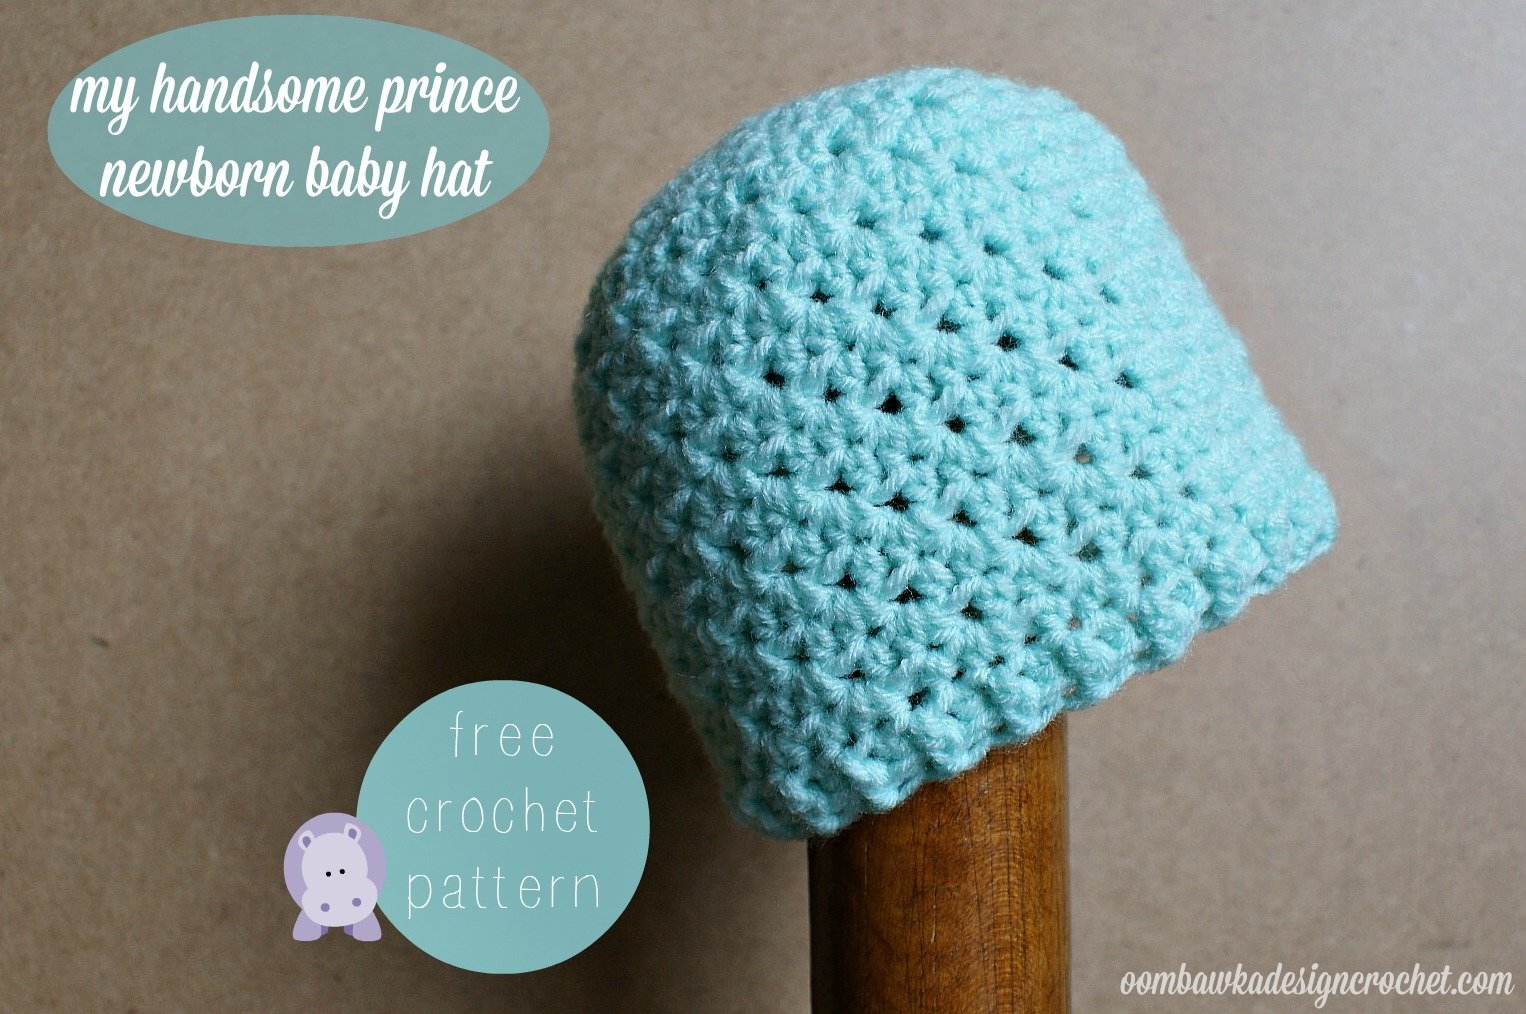 Crochet Patterns Newborn Hats : Crochet Newborn Hat Pattern My handsome prince newborn baby hat ...